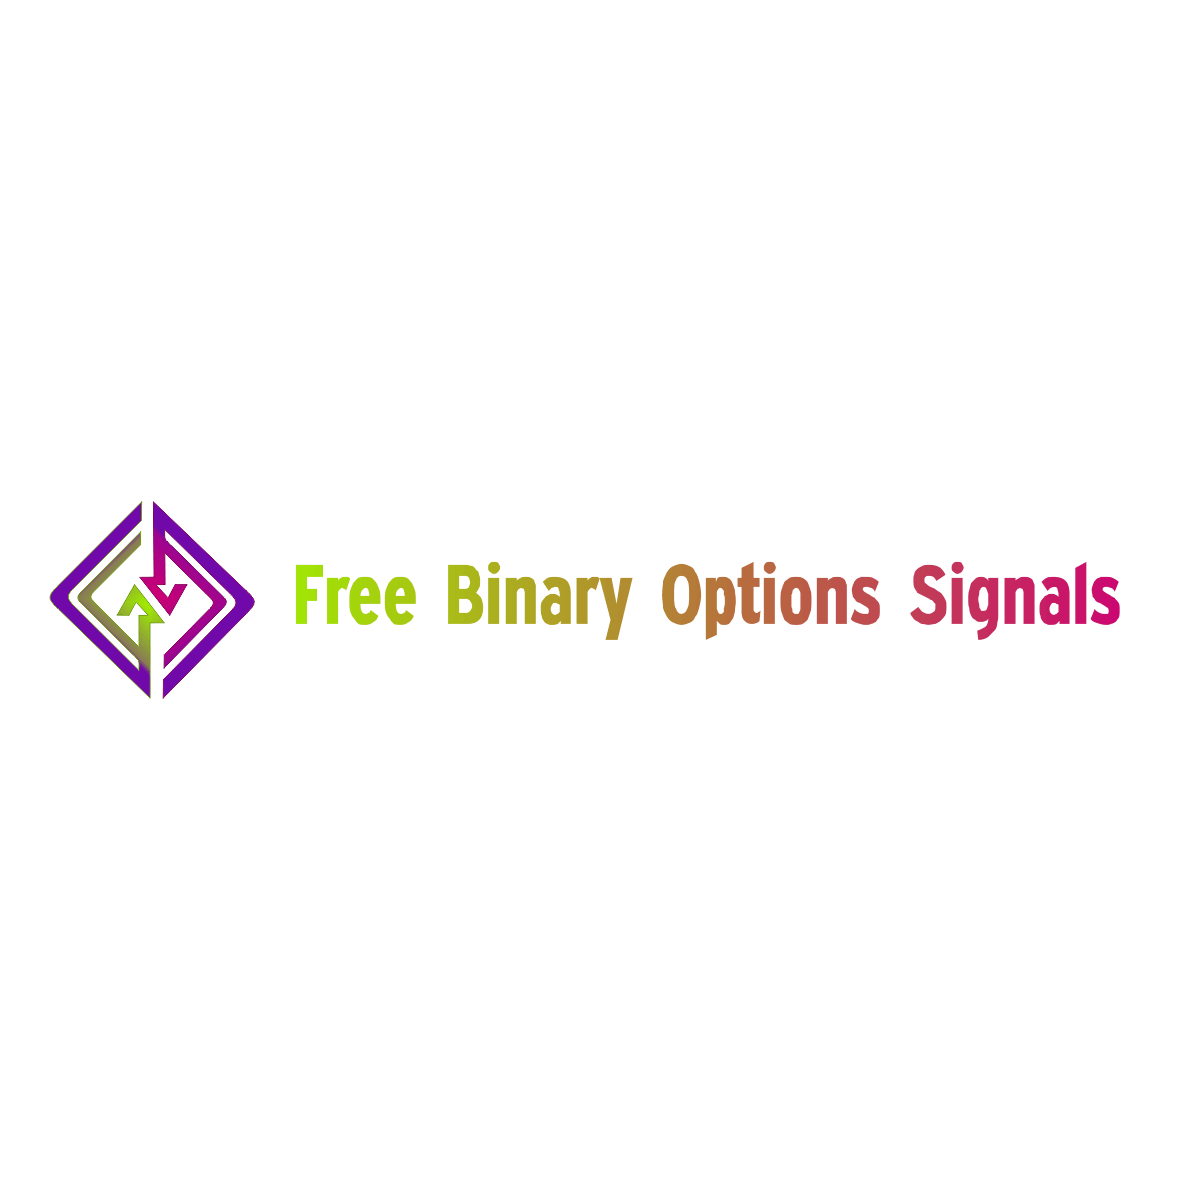 Free binary option signal service